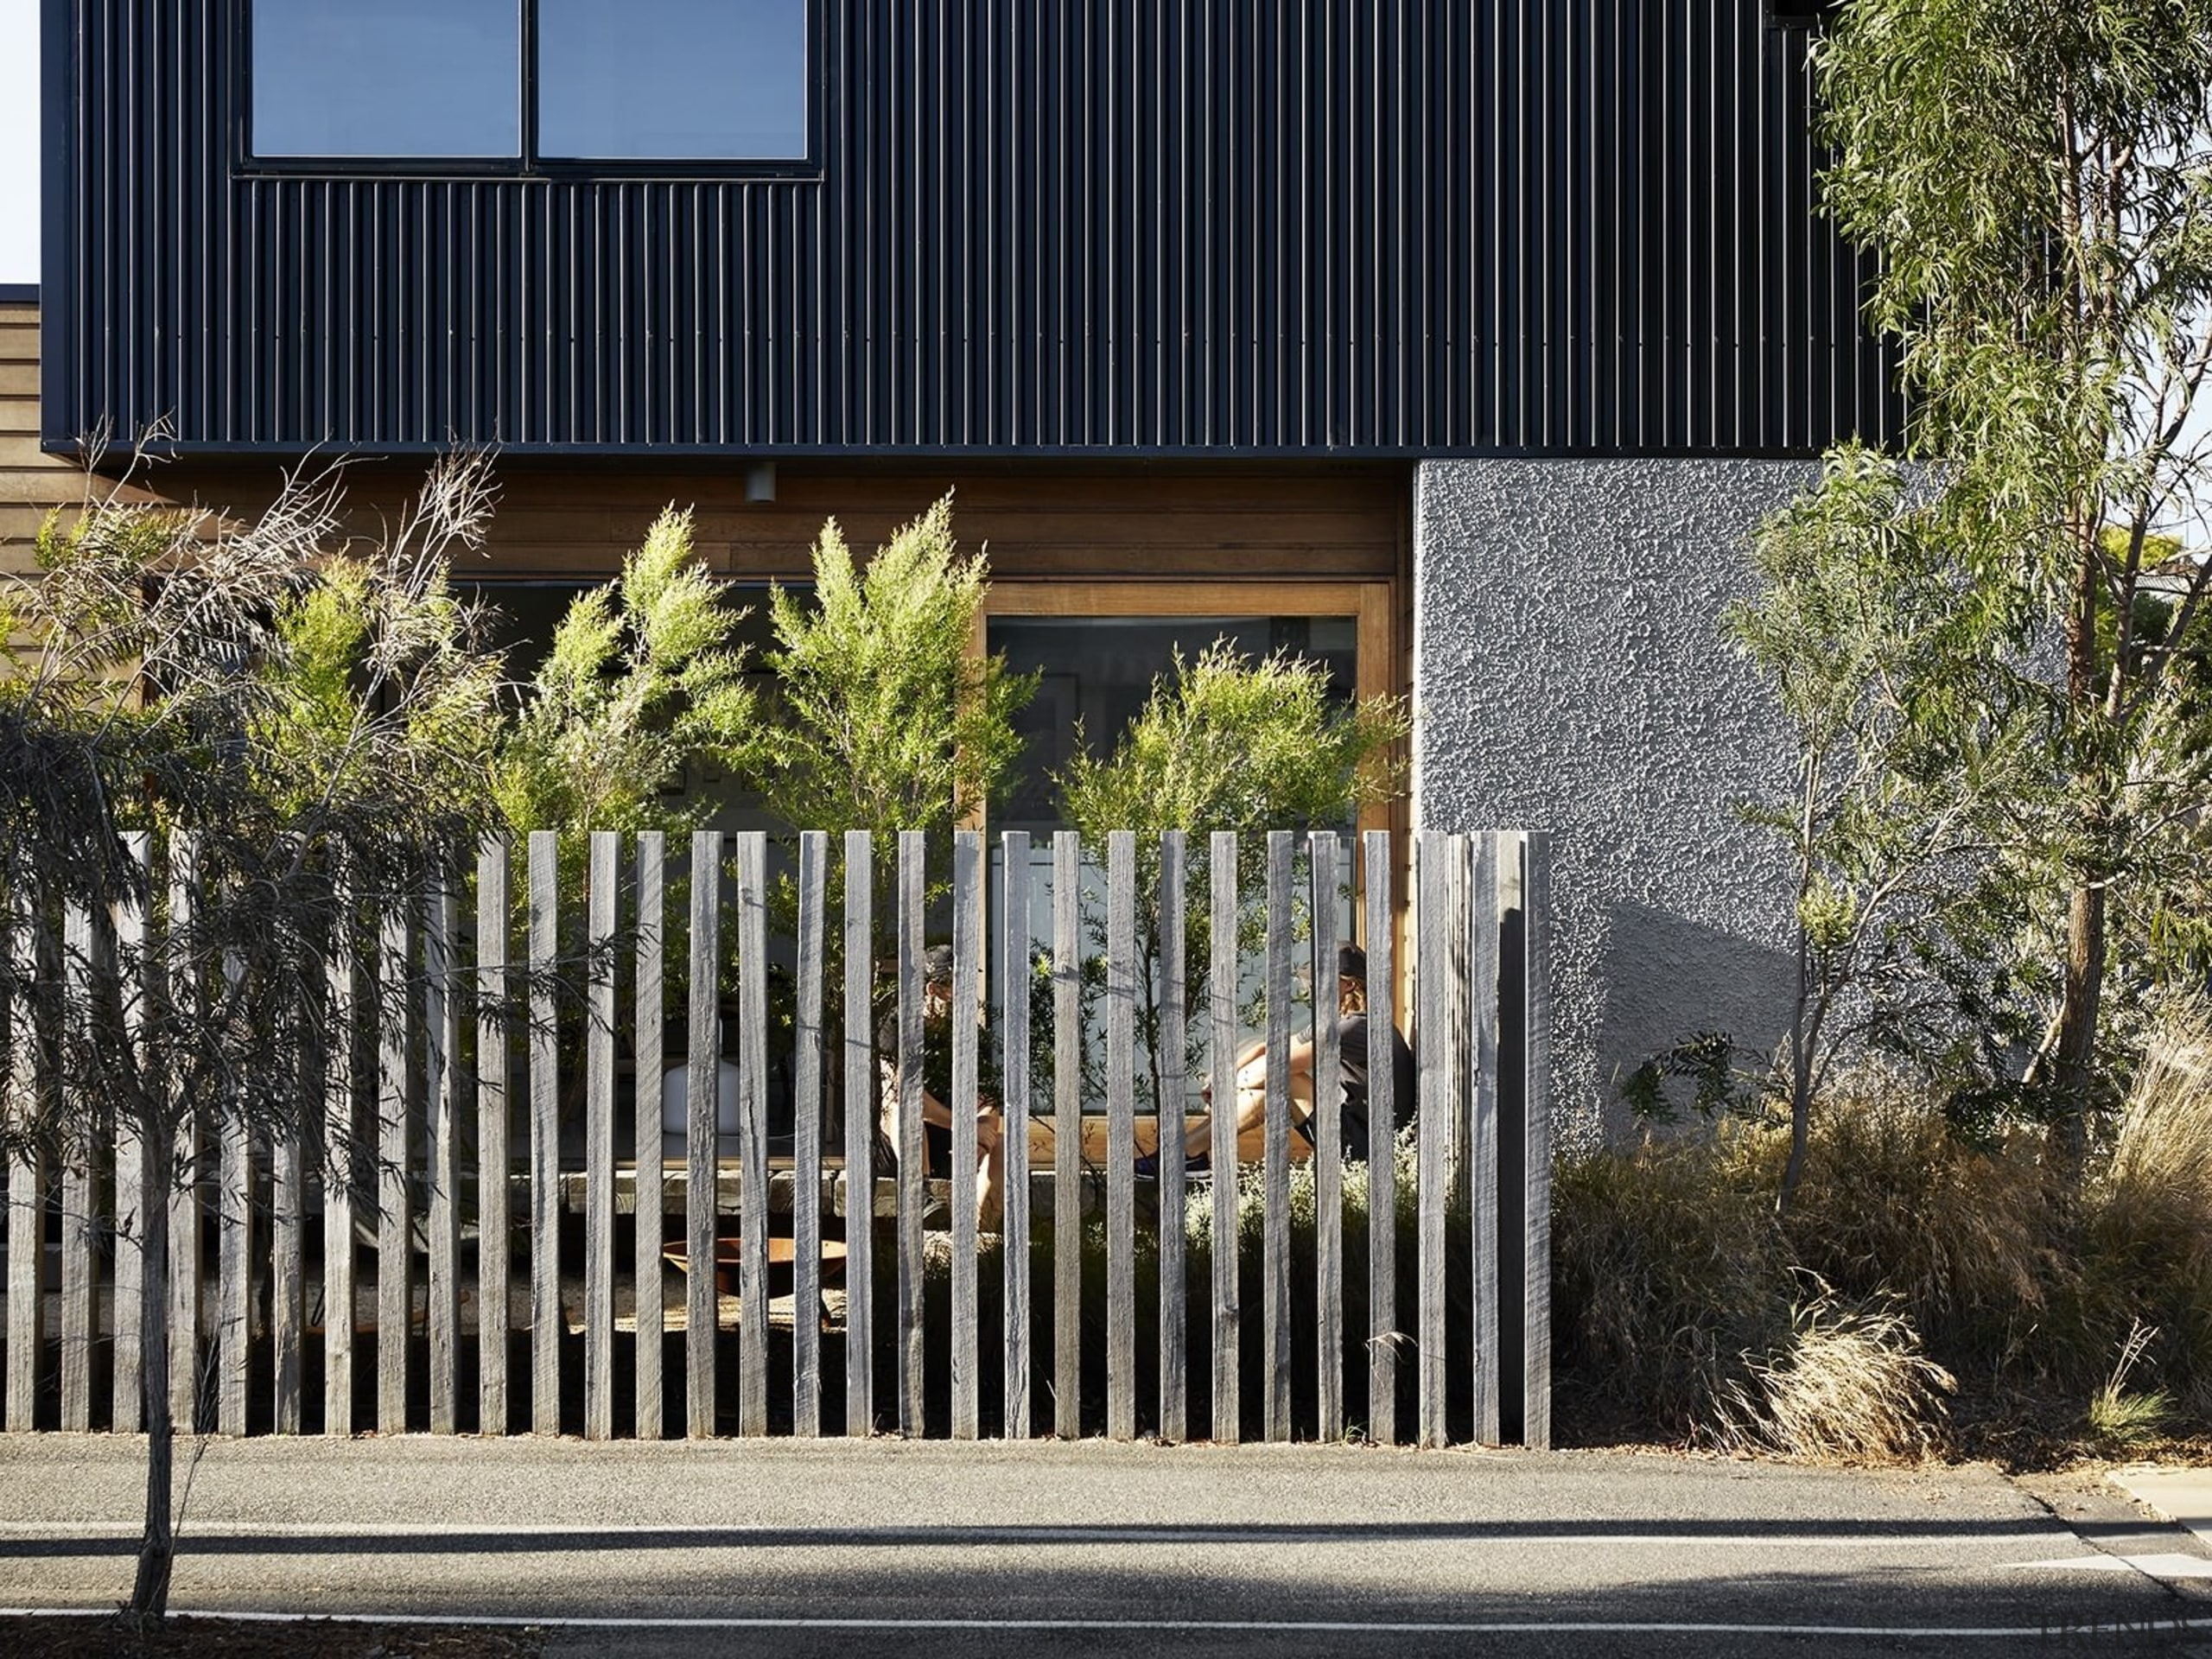 Architect: Liam WallisPhotography by Tess Kelly architecture, building, facade, fence, gate, home, house, iron, real estate, residential area, siding, tree, black, gray